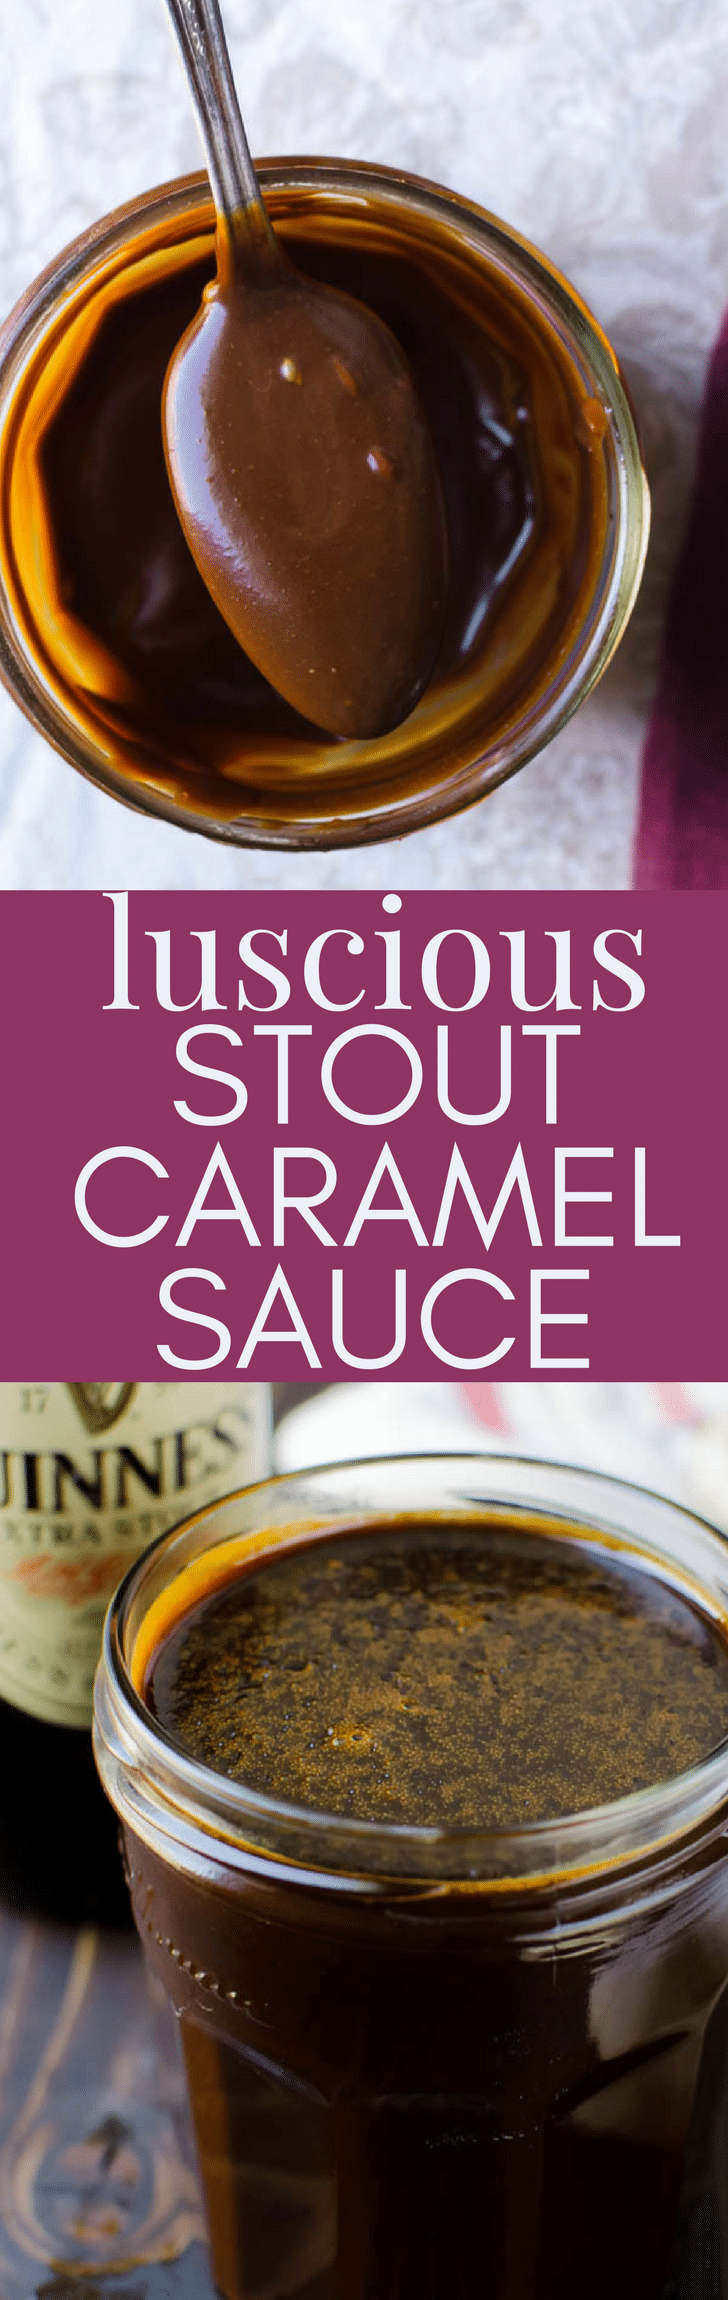 This homemade caramel sauce recipe is perfect for St. Patty's Day because it starts with Irish stout.  Deeply rich and nutty, Luscious Stout Caramel Sauce is a delicious ice cream sauce that's easy to make. #stpatricksday #stpattysday #stpattysdaydessert #dessert #icecreamtopping #icecreamsauce #caramel #caramelsauce #stout #irishstout #guinness #extrastout #homemadecaramelsauce #homemadecaramel #dessert #vegetarian #boozydesserts #dessertwithbooze #alcohol